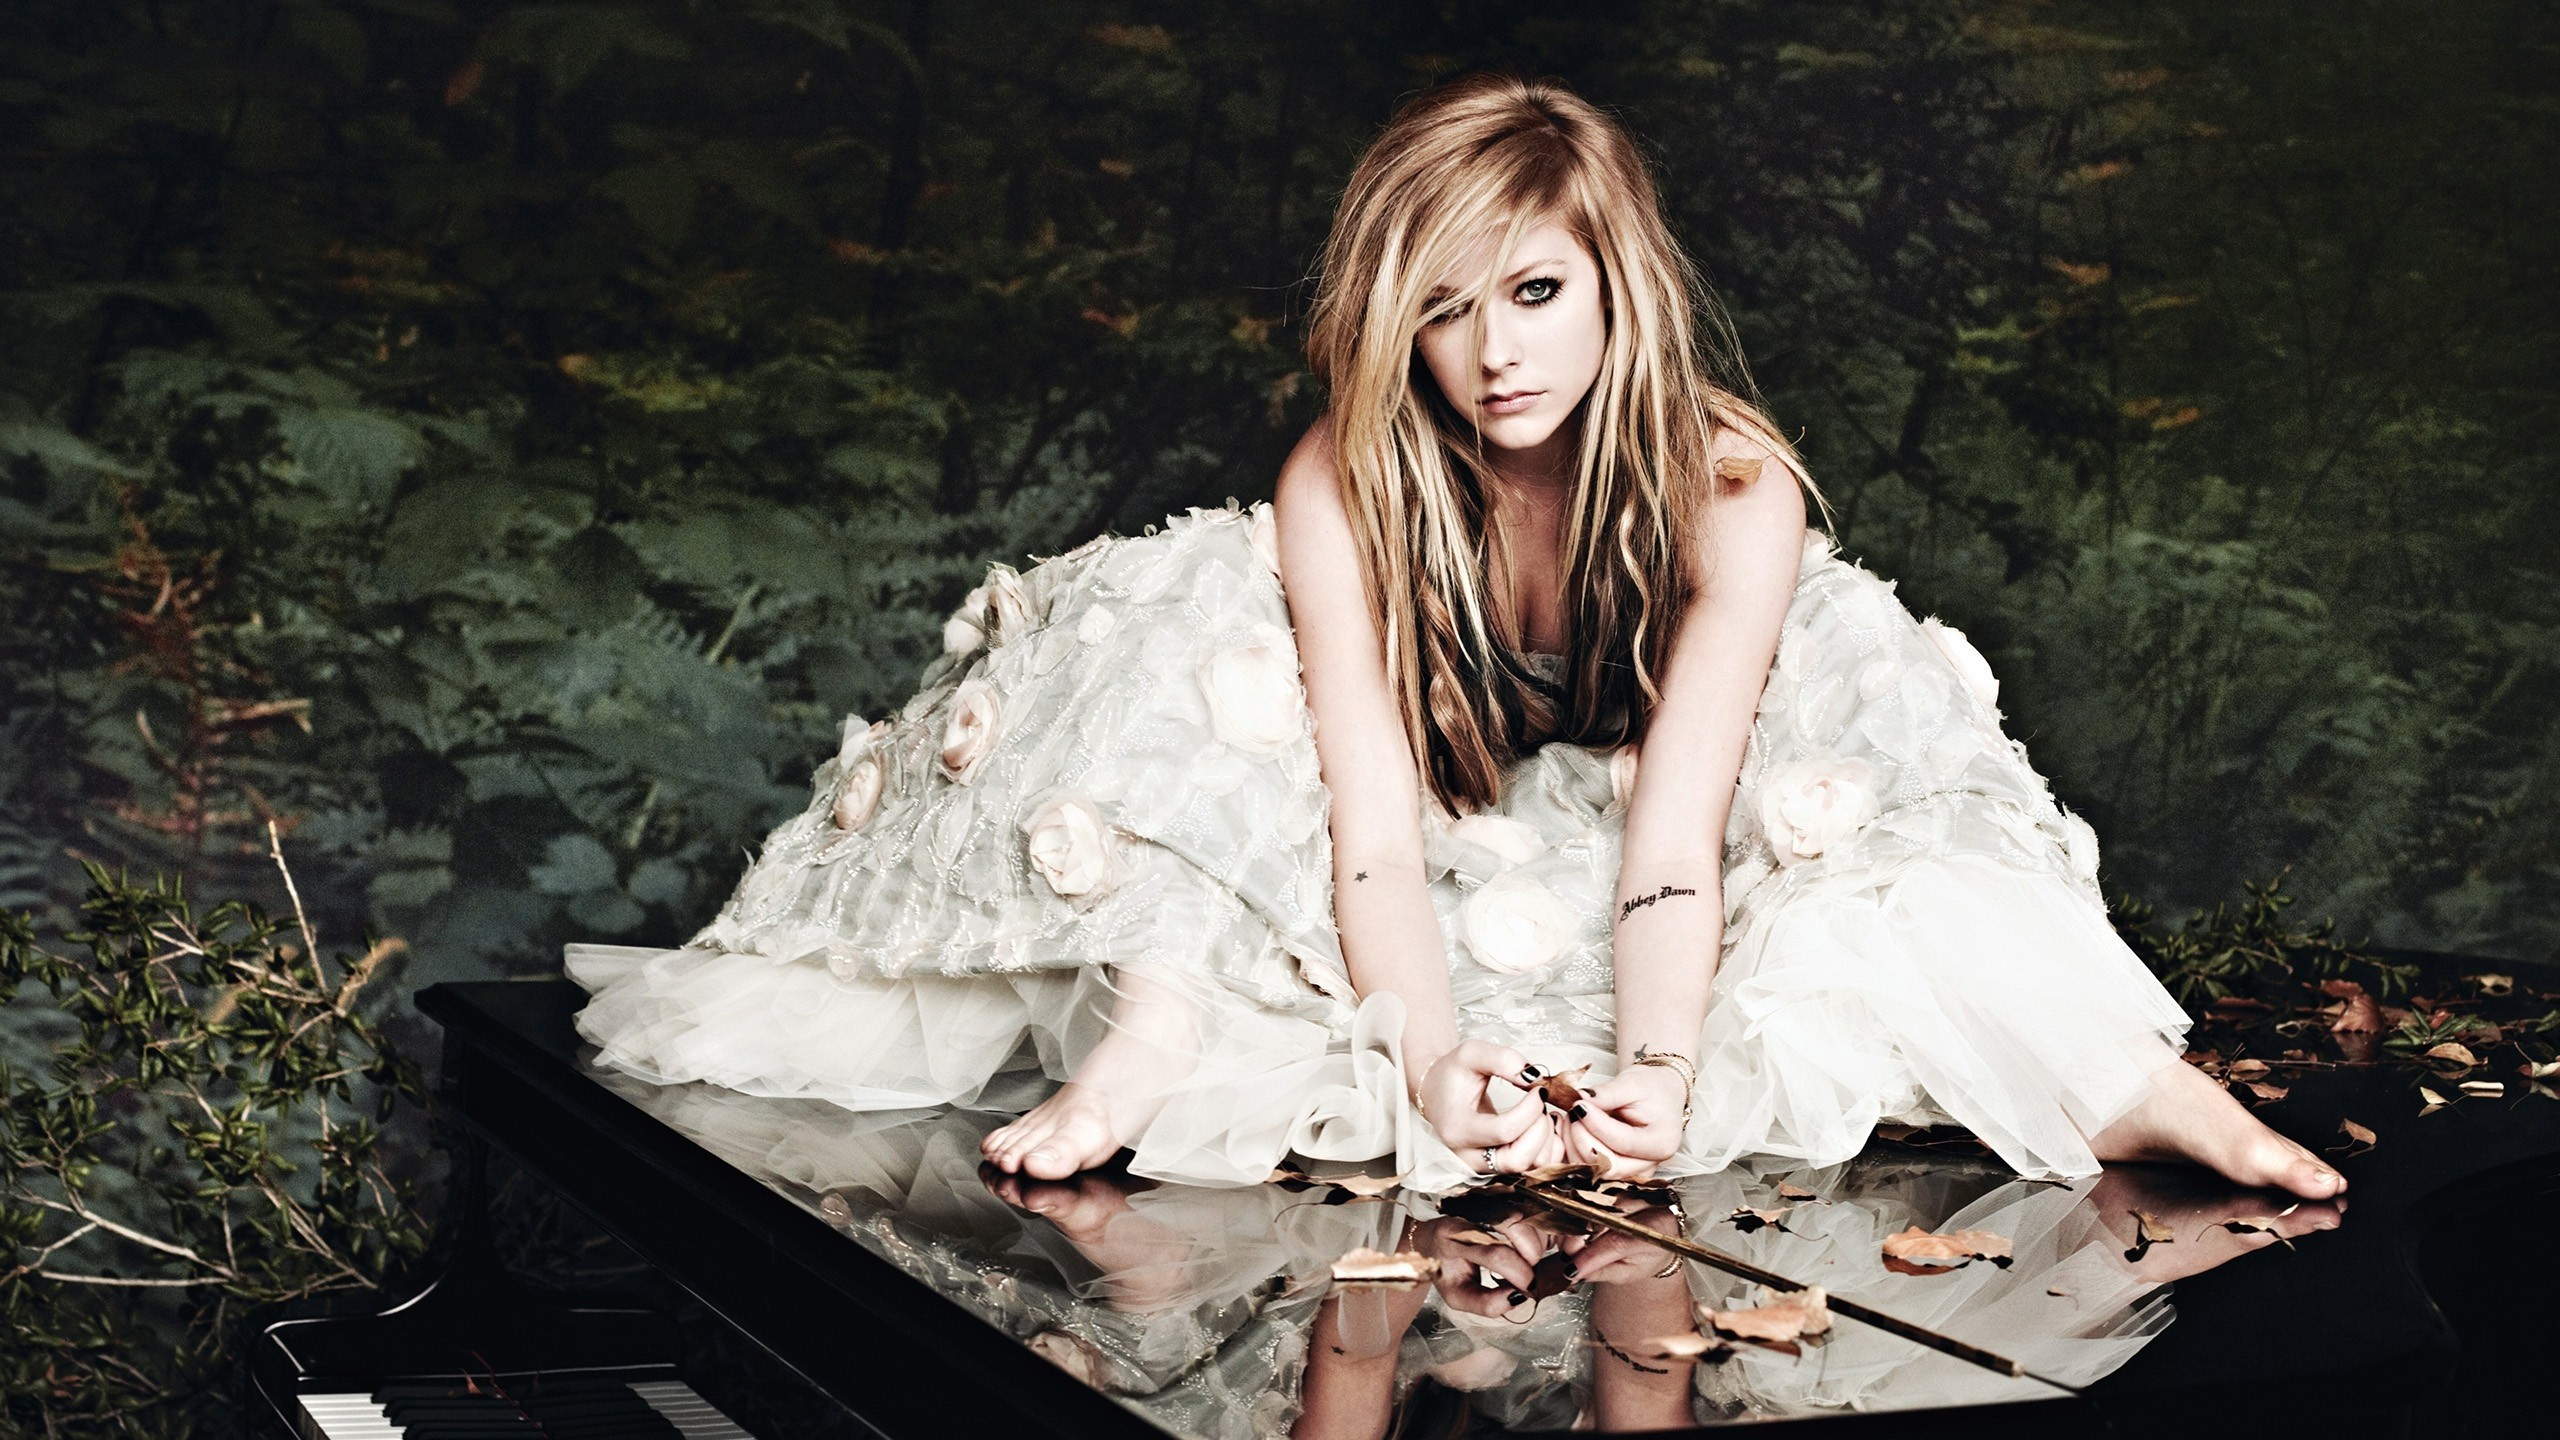 Download Mac iMac 27 2560x1440 avril lavigne  girl  dress  forest HD Wallpaper